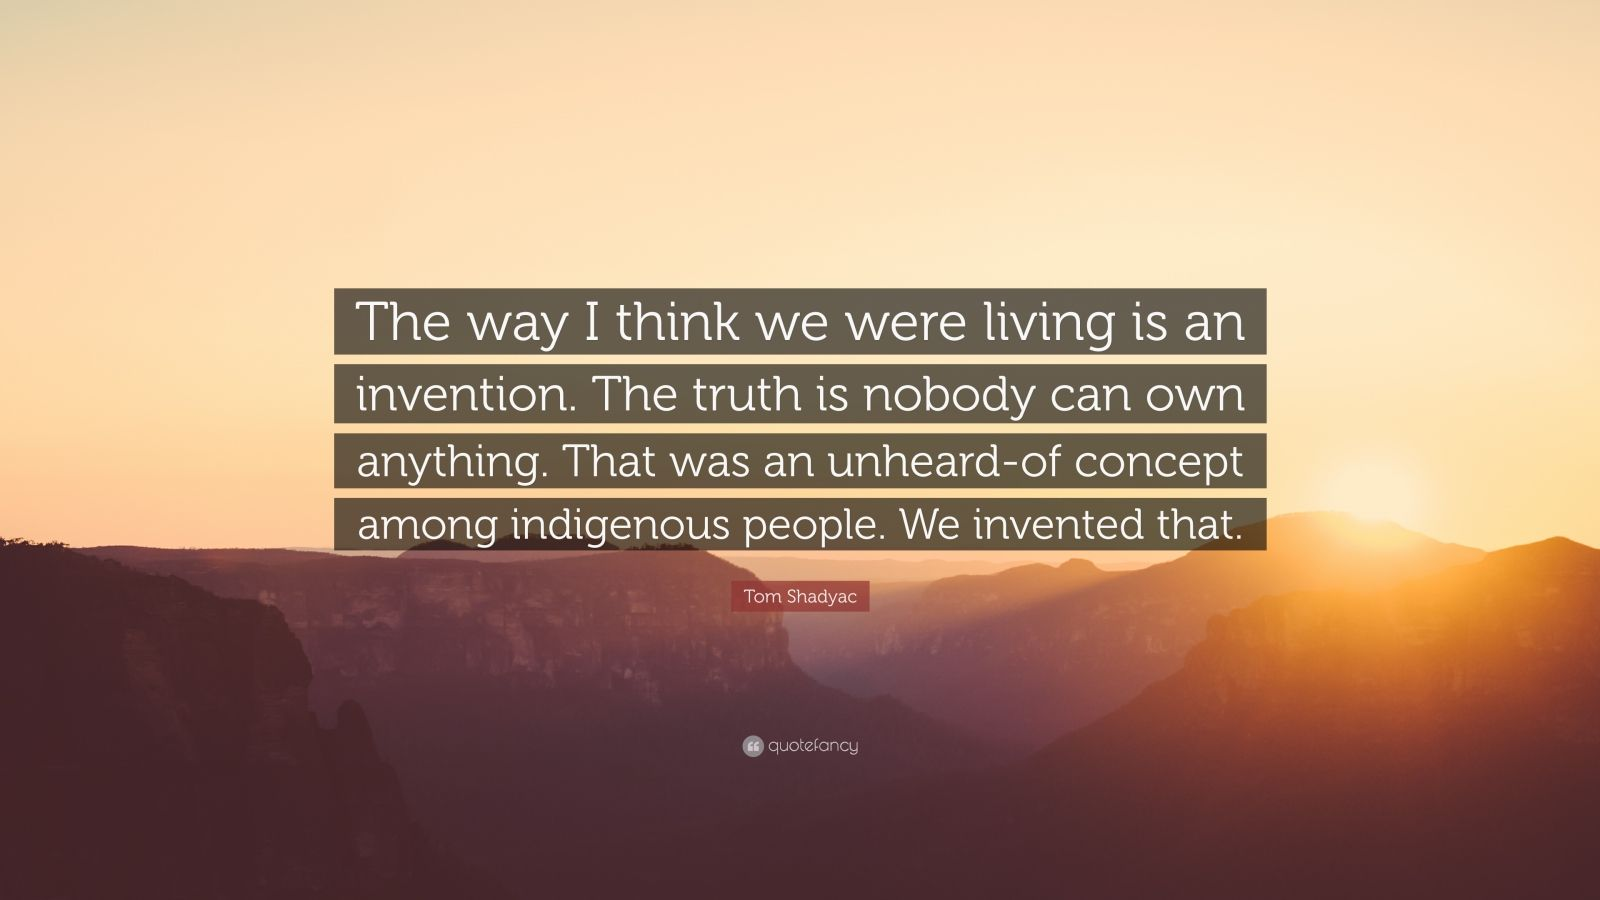 """Tom Shadyac Quote: """"The way I think we were living is an invention. The truth is nobody can own anything. That was an unheard-of concept among indigenous people. We invented that."""""""